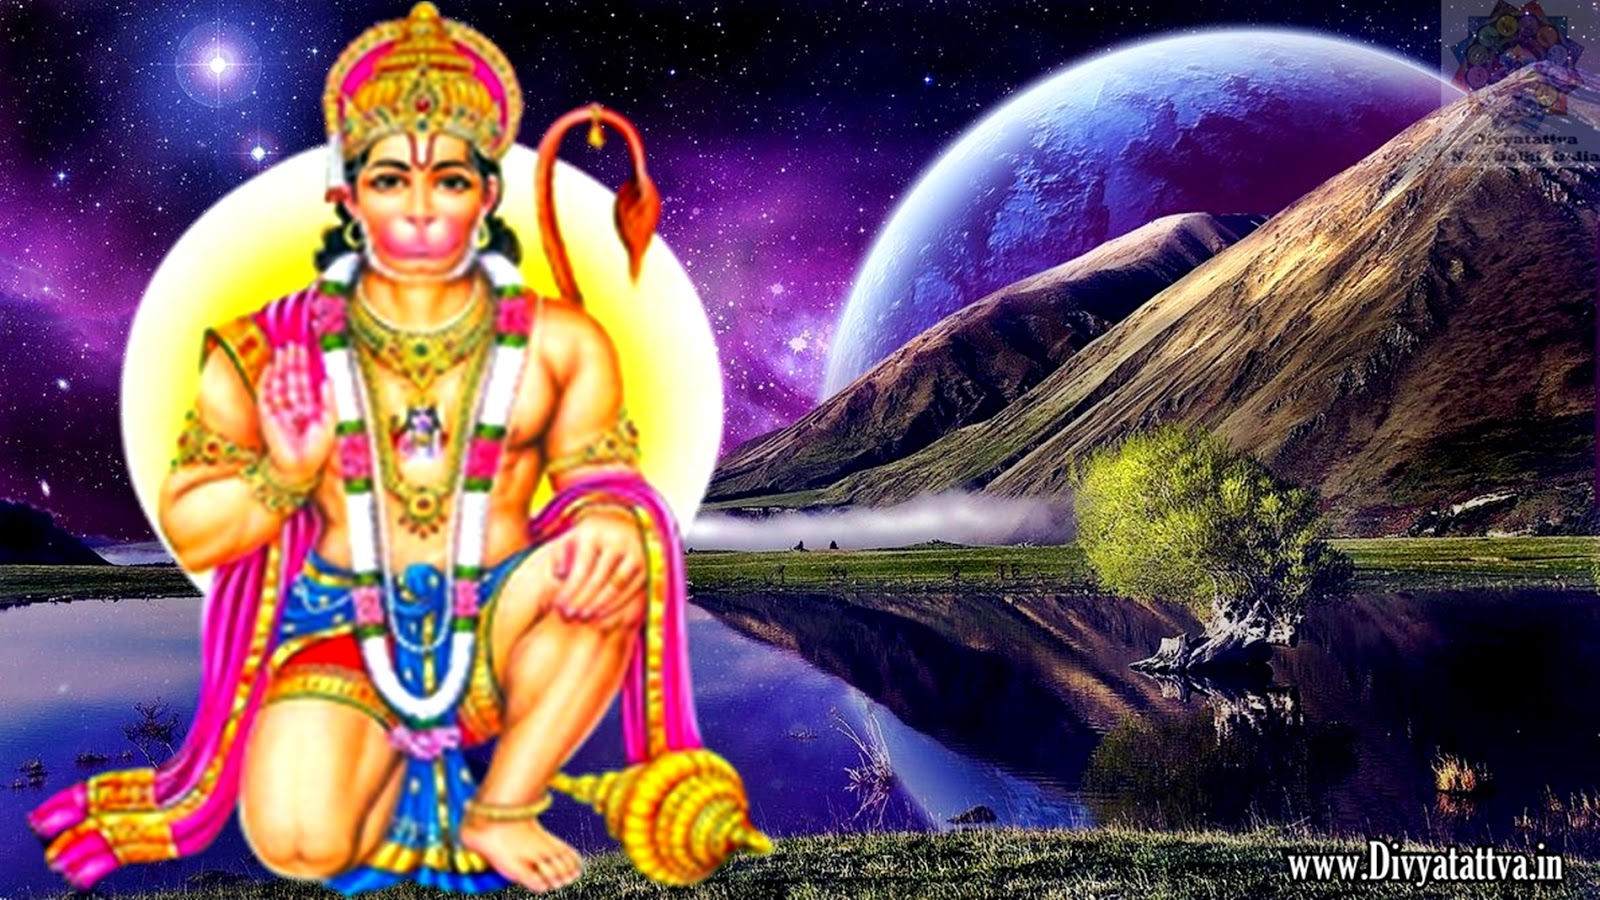 Divyatattva Astrology Free Horoscopes Psychic Tarot Yoga Tantra Occult Images Videos Lord Hanuman Hd Wallpaper Bajrang Bali Background Images